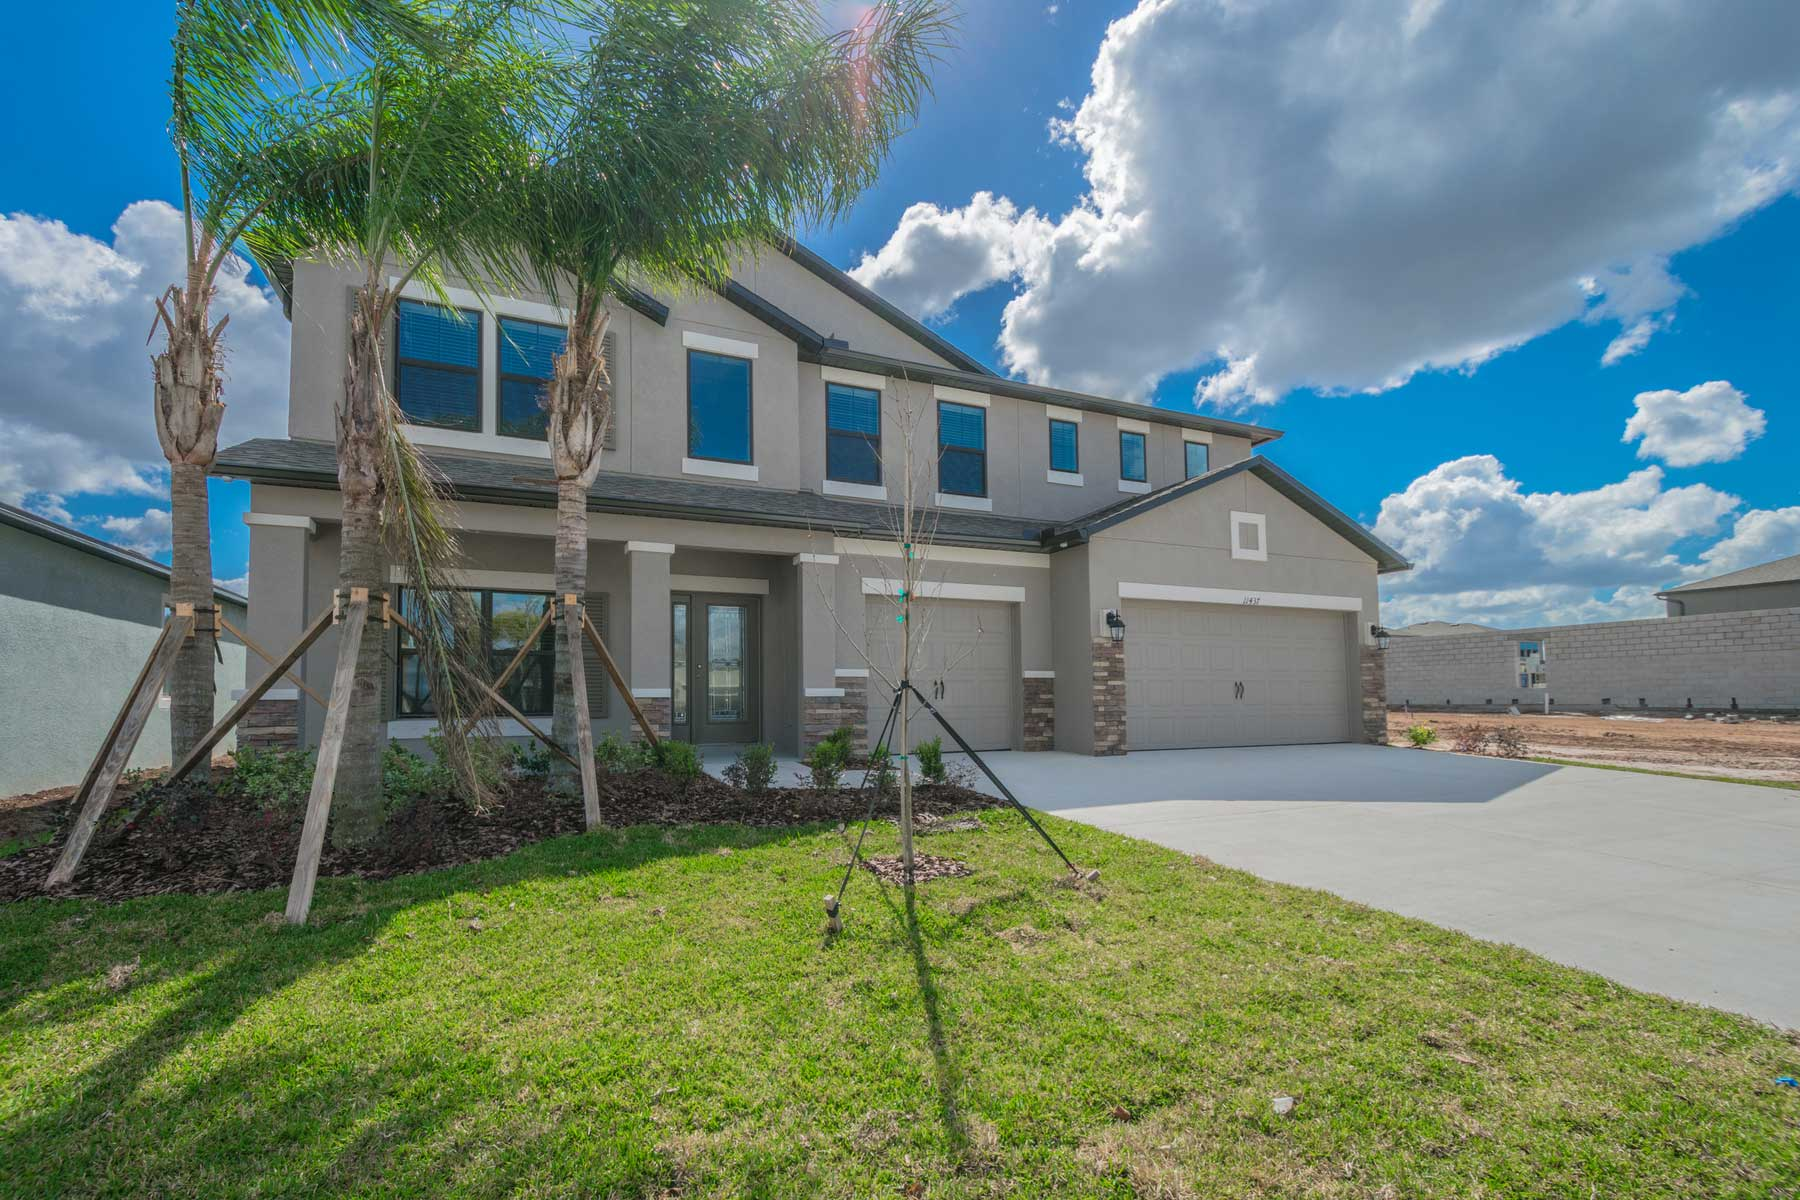 Southfork Lakes Homes For Sale In Riverview Fl M I Homes